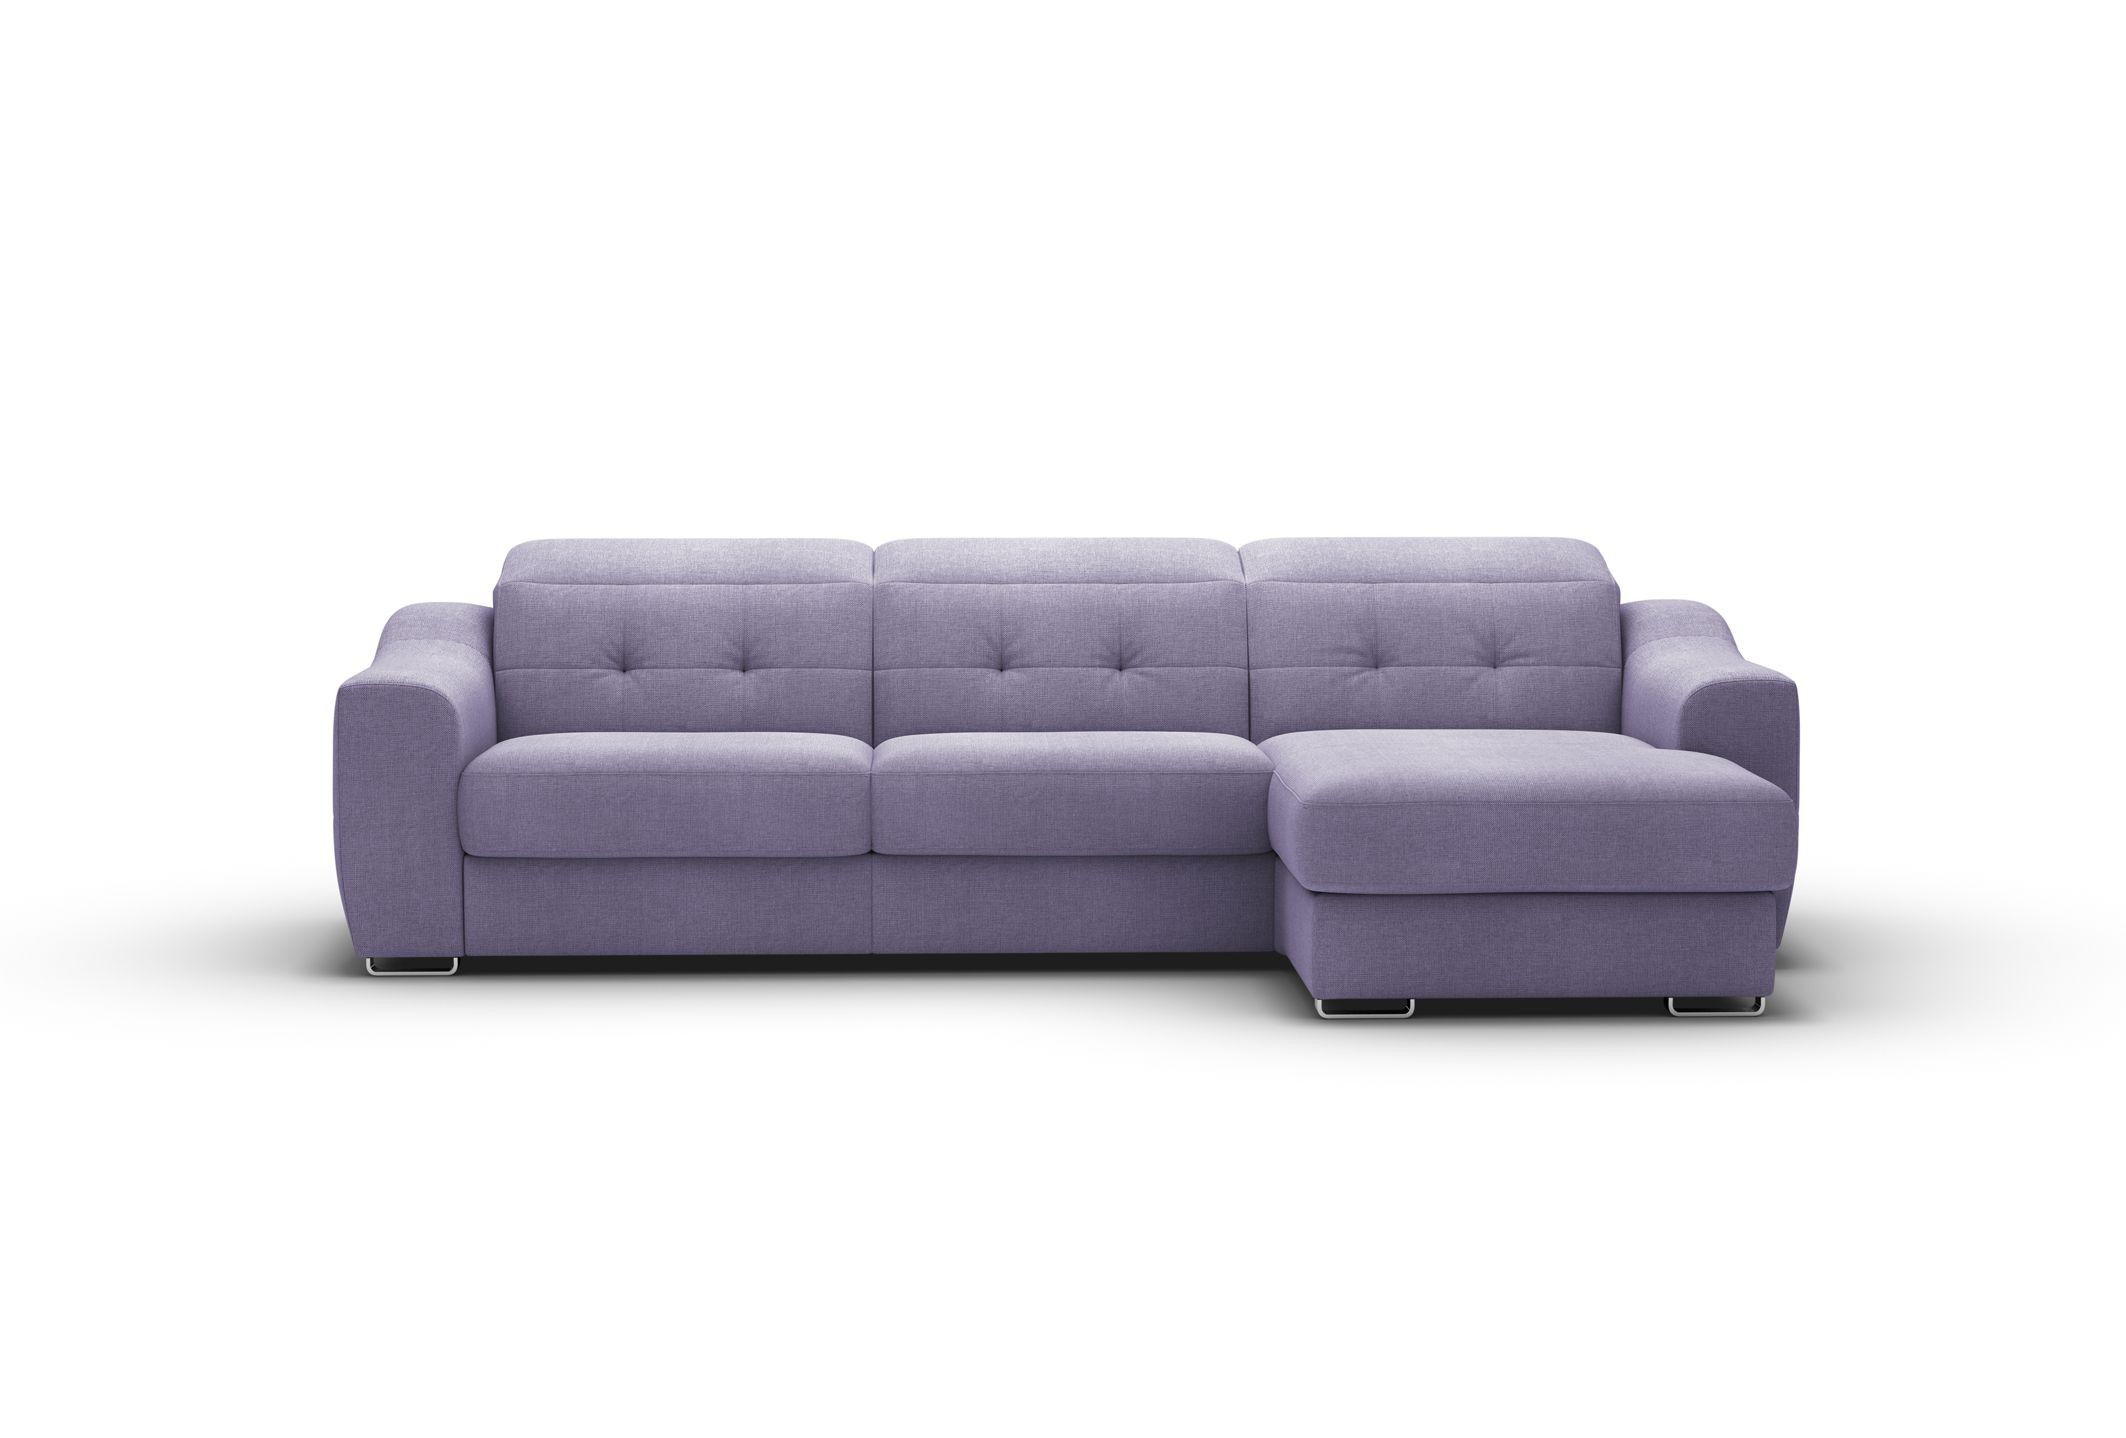 Cado Modern Fueniture Aura Sectional Sofa With Images Modern